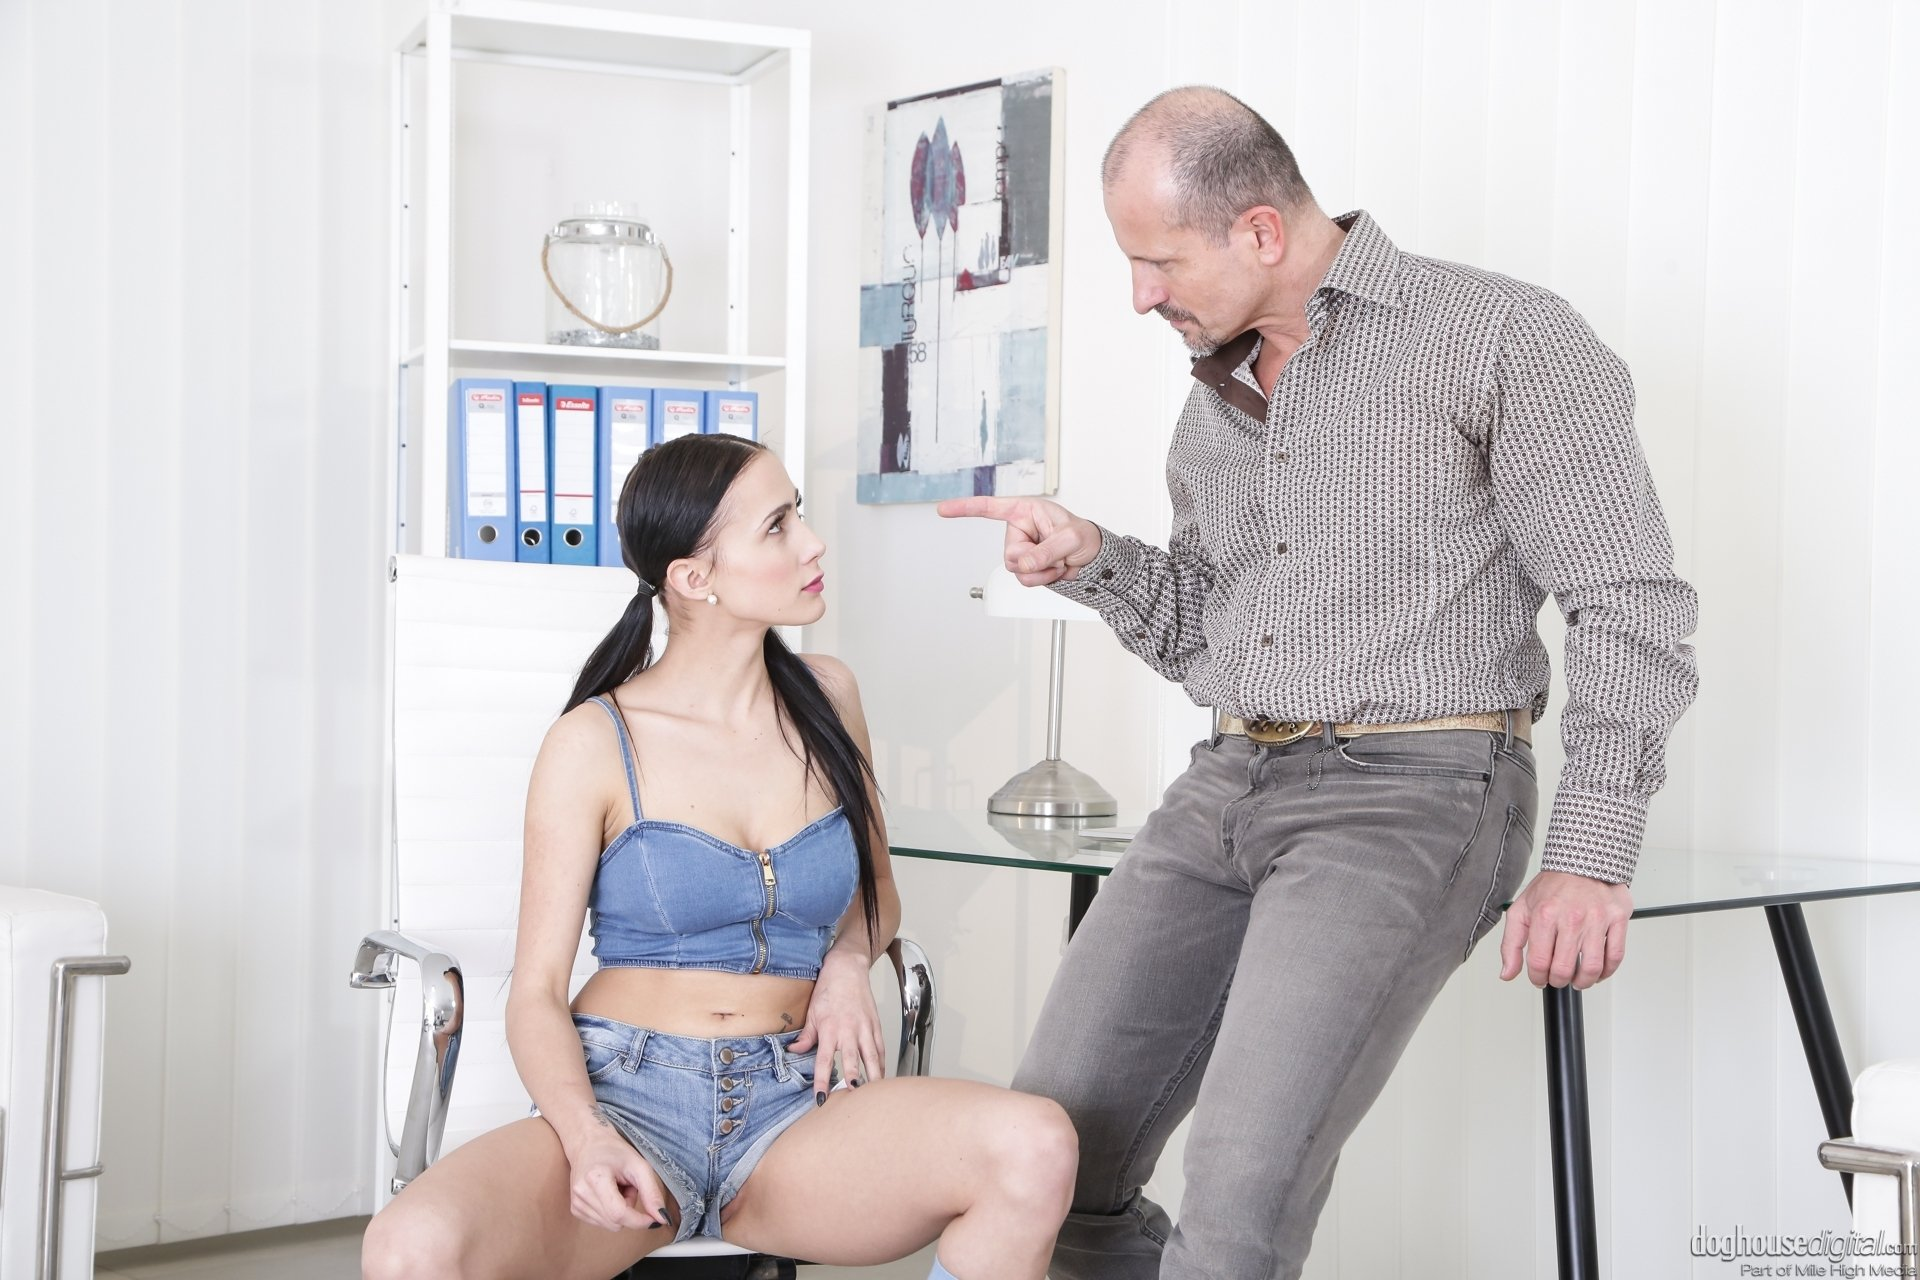 Cheating getting punished sexually wife